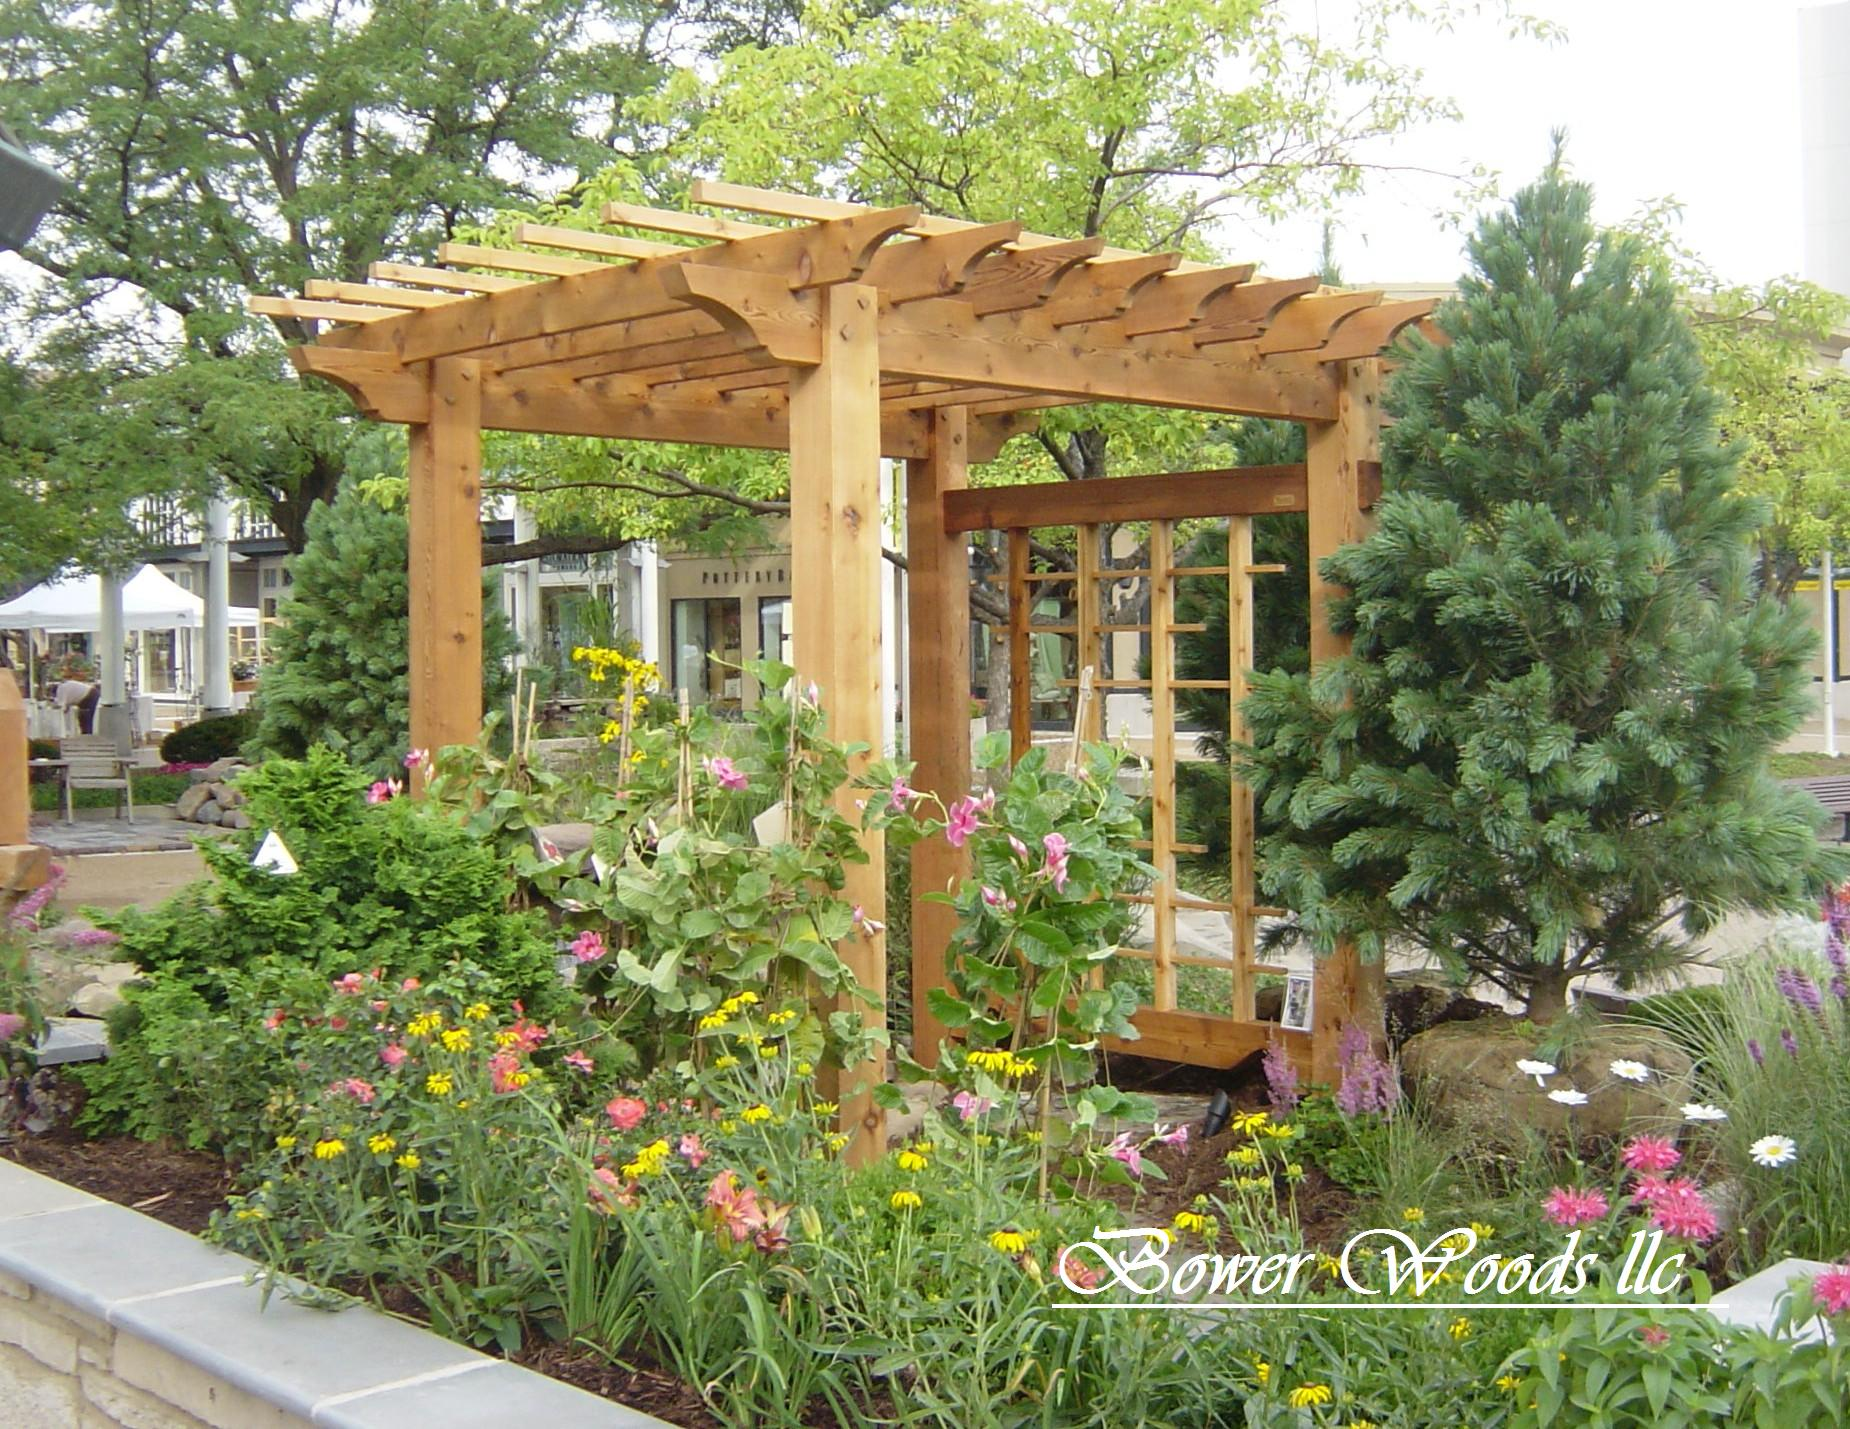 73 best ideas about arbor pergola on pinterest gardens backyards and white pergola arbor design - Arbor Design Ideas